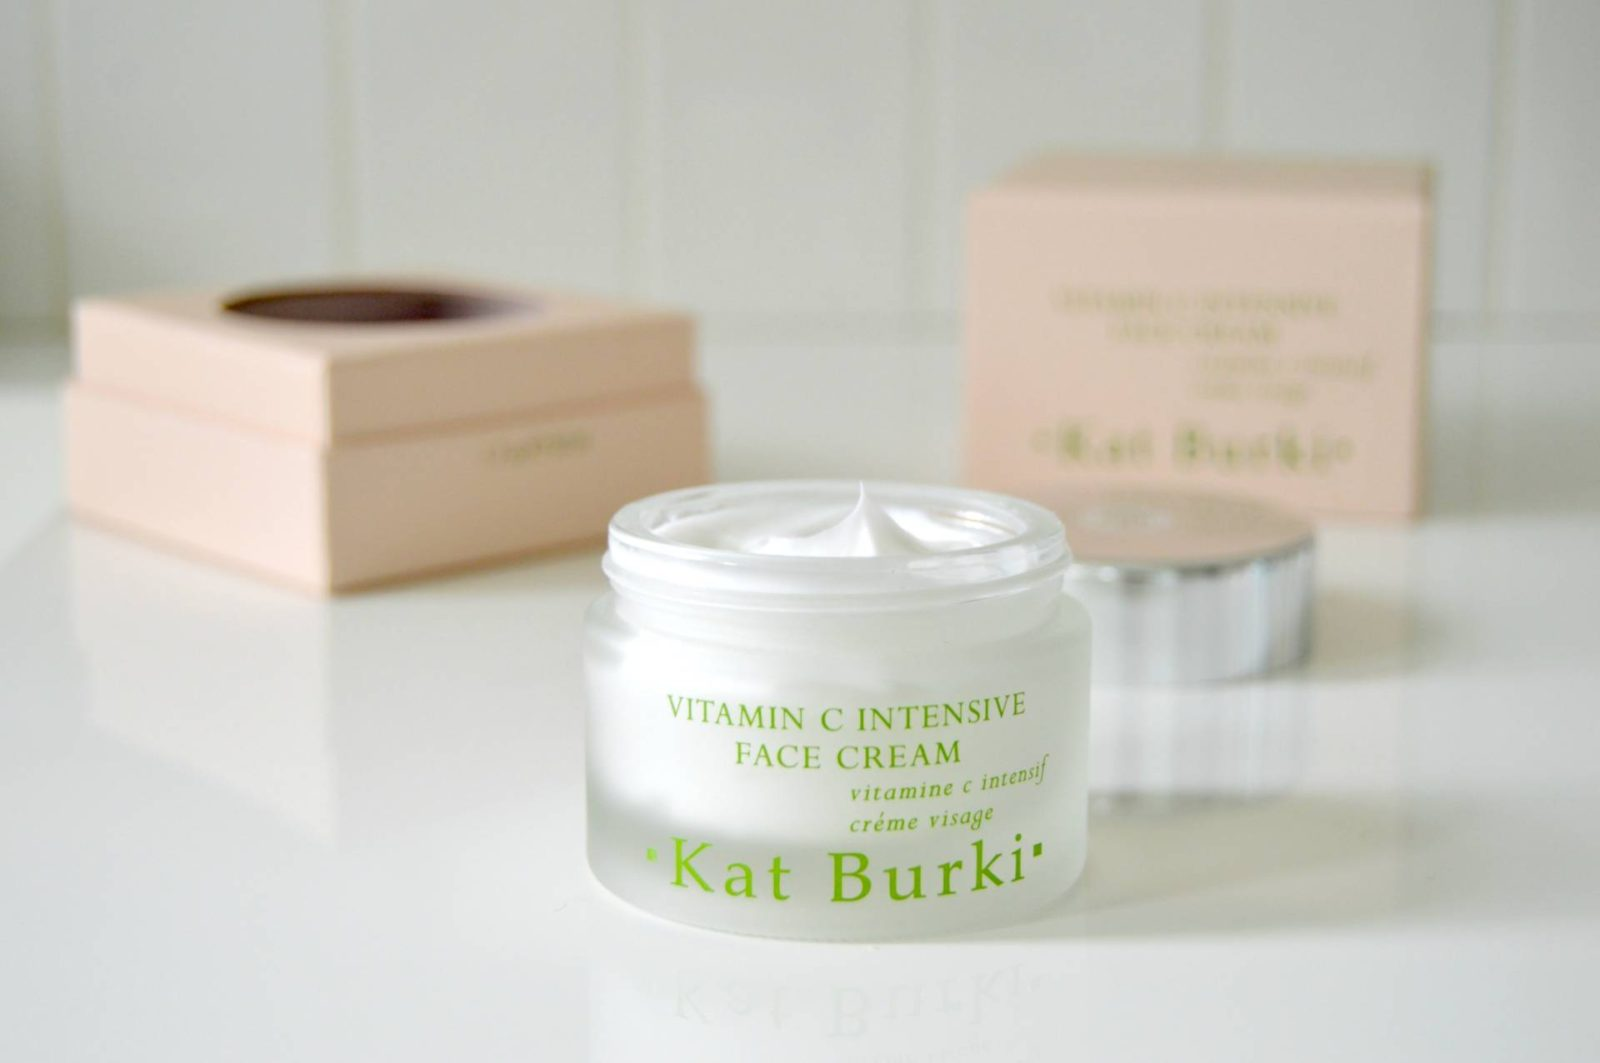 Kat Burki – Vitamin C Nourishing Cleansing Balm & Intensive Face Cream